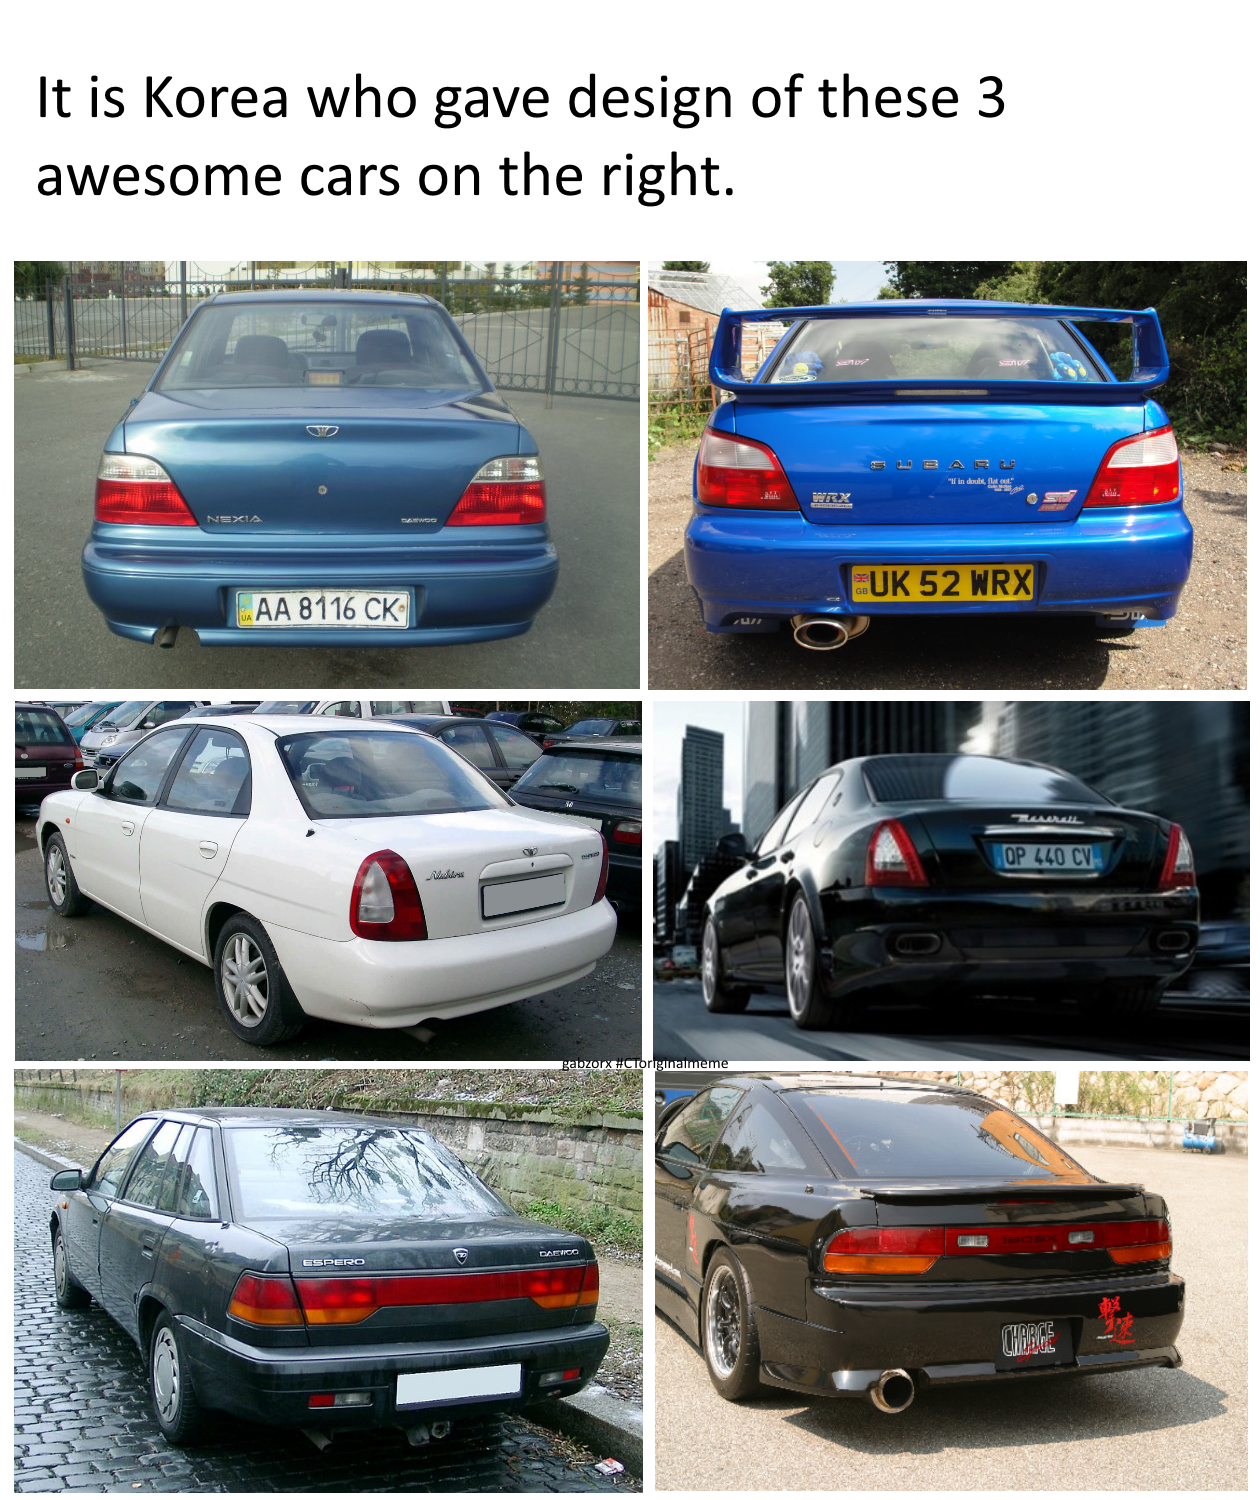 Daewoo cars are older so they didn't copy :D